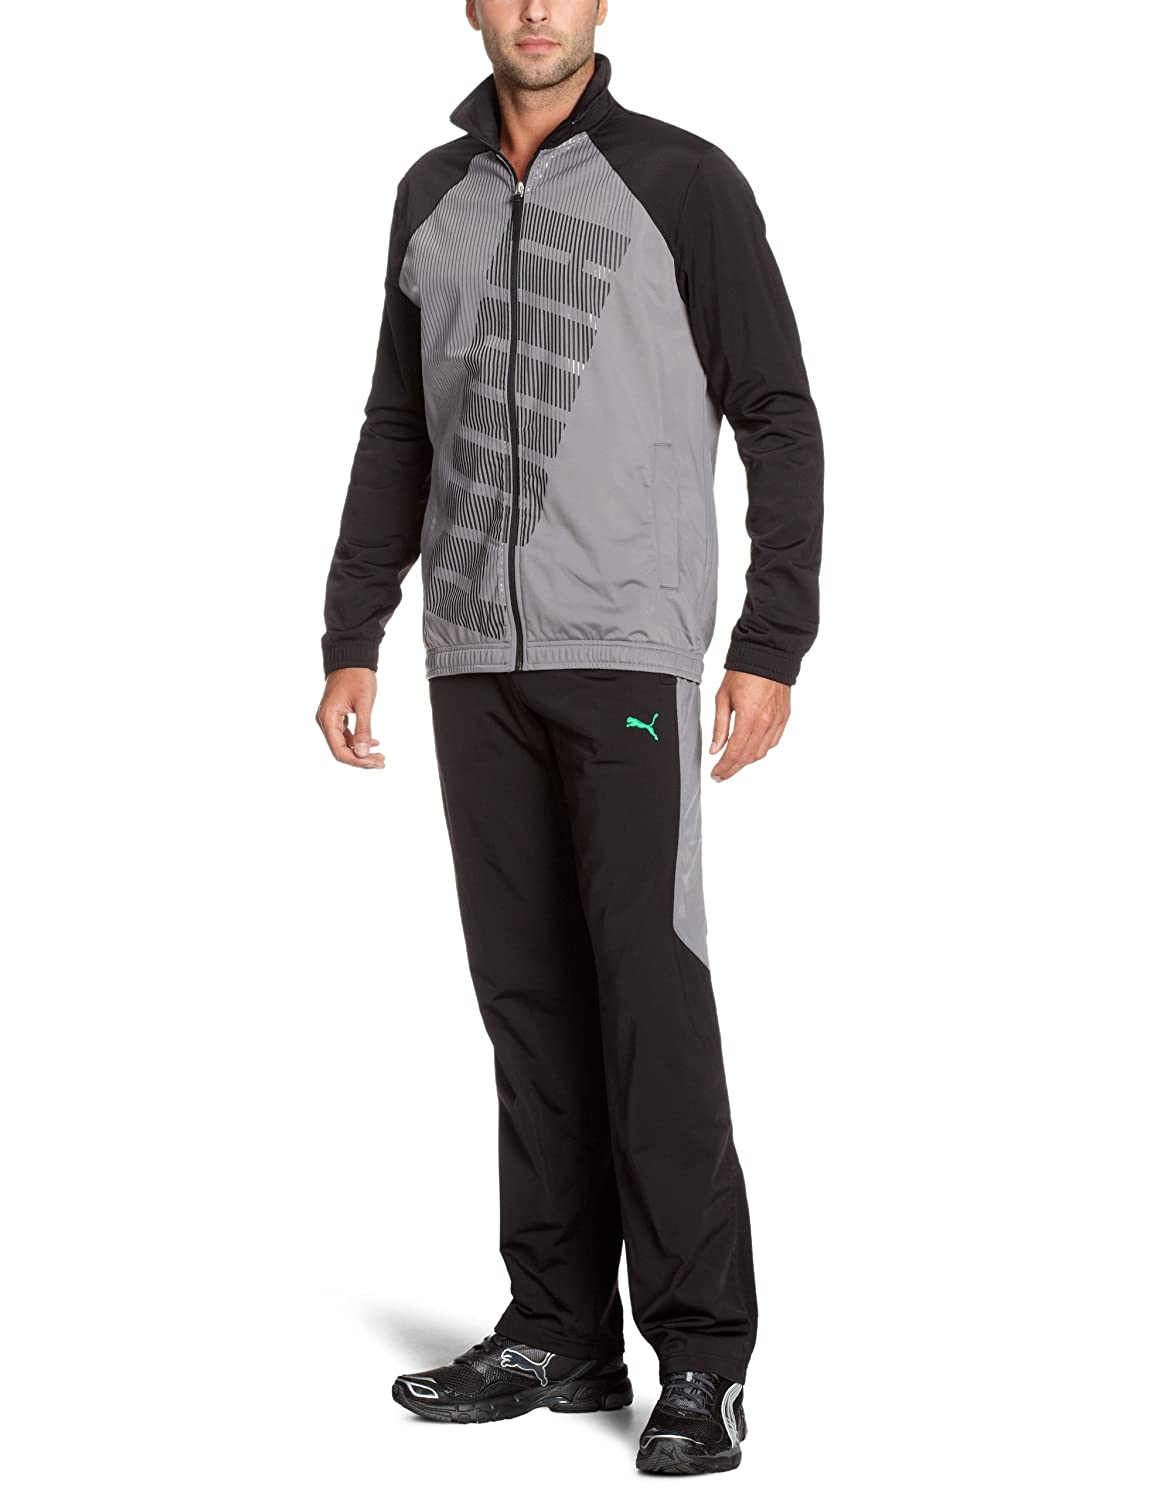 PUMA Men's Tracksuit Jacket with Graphic